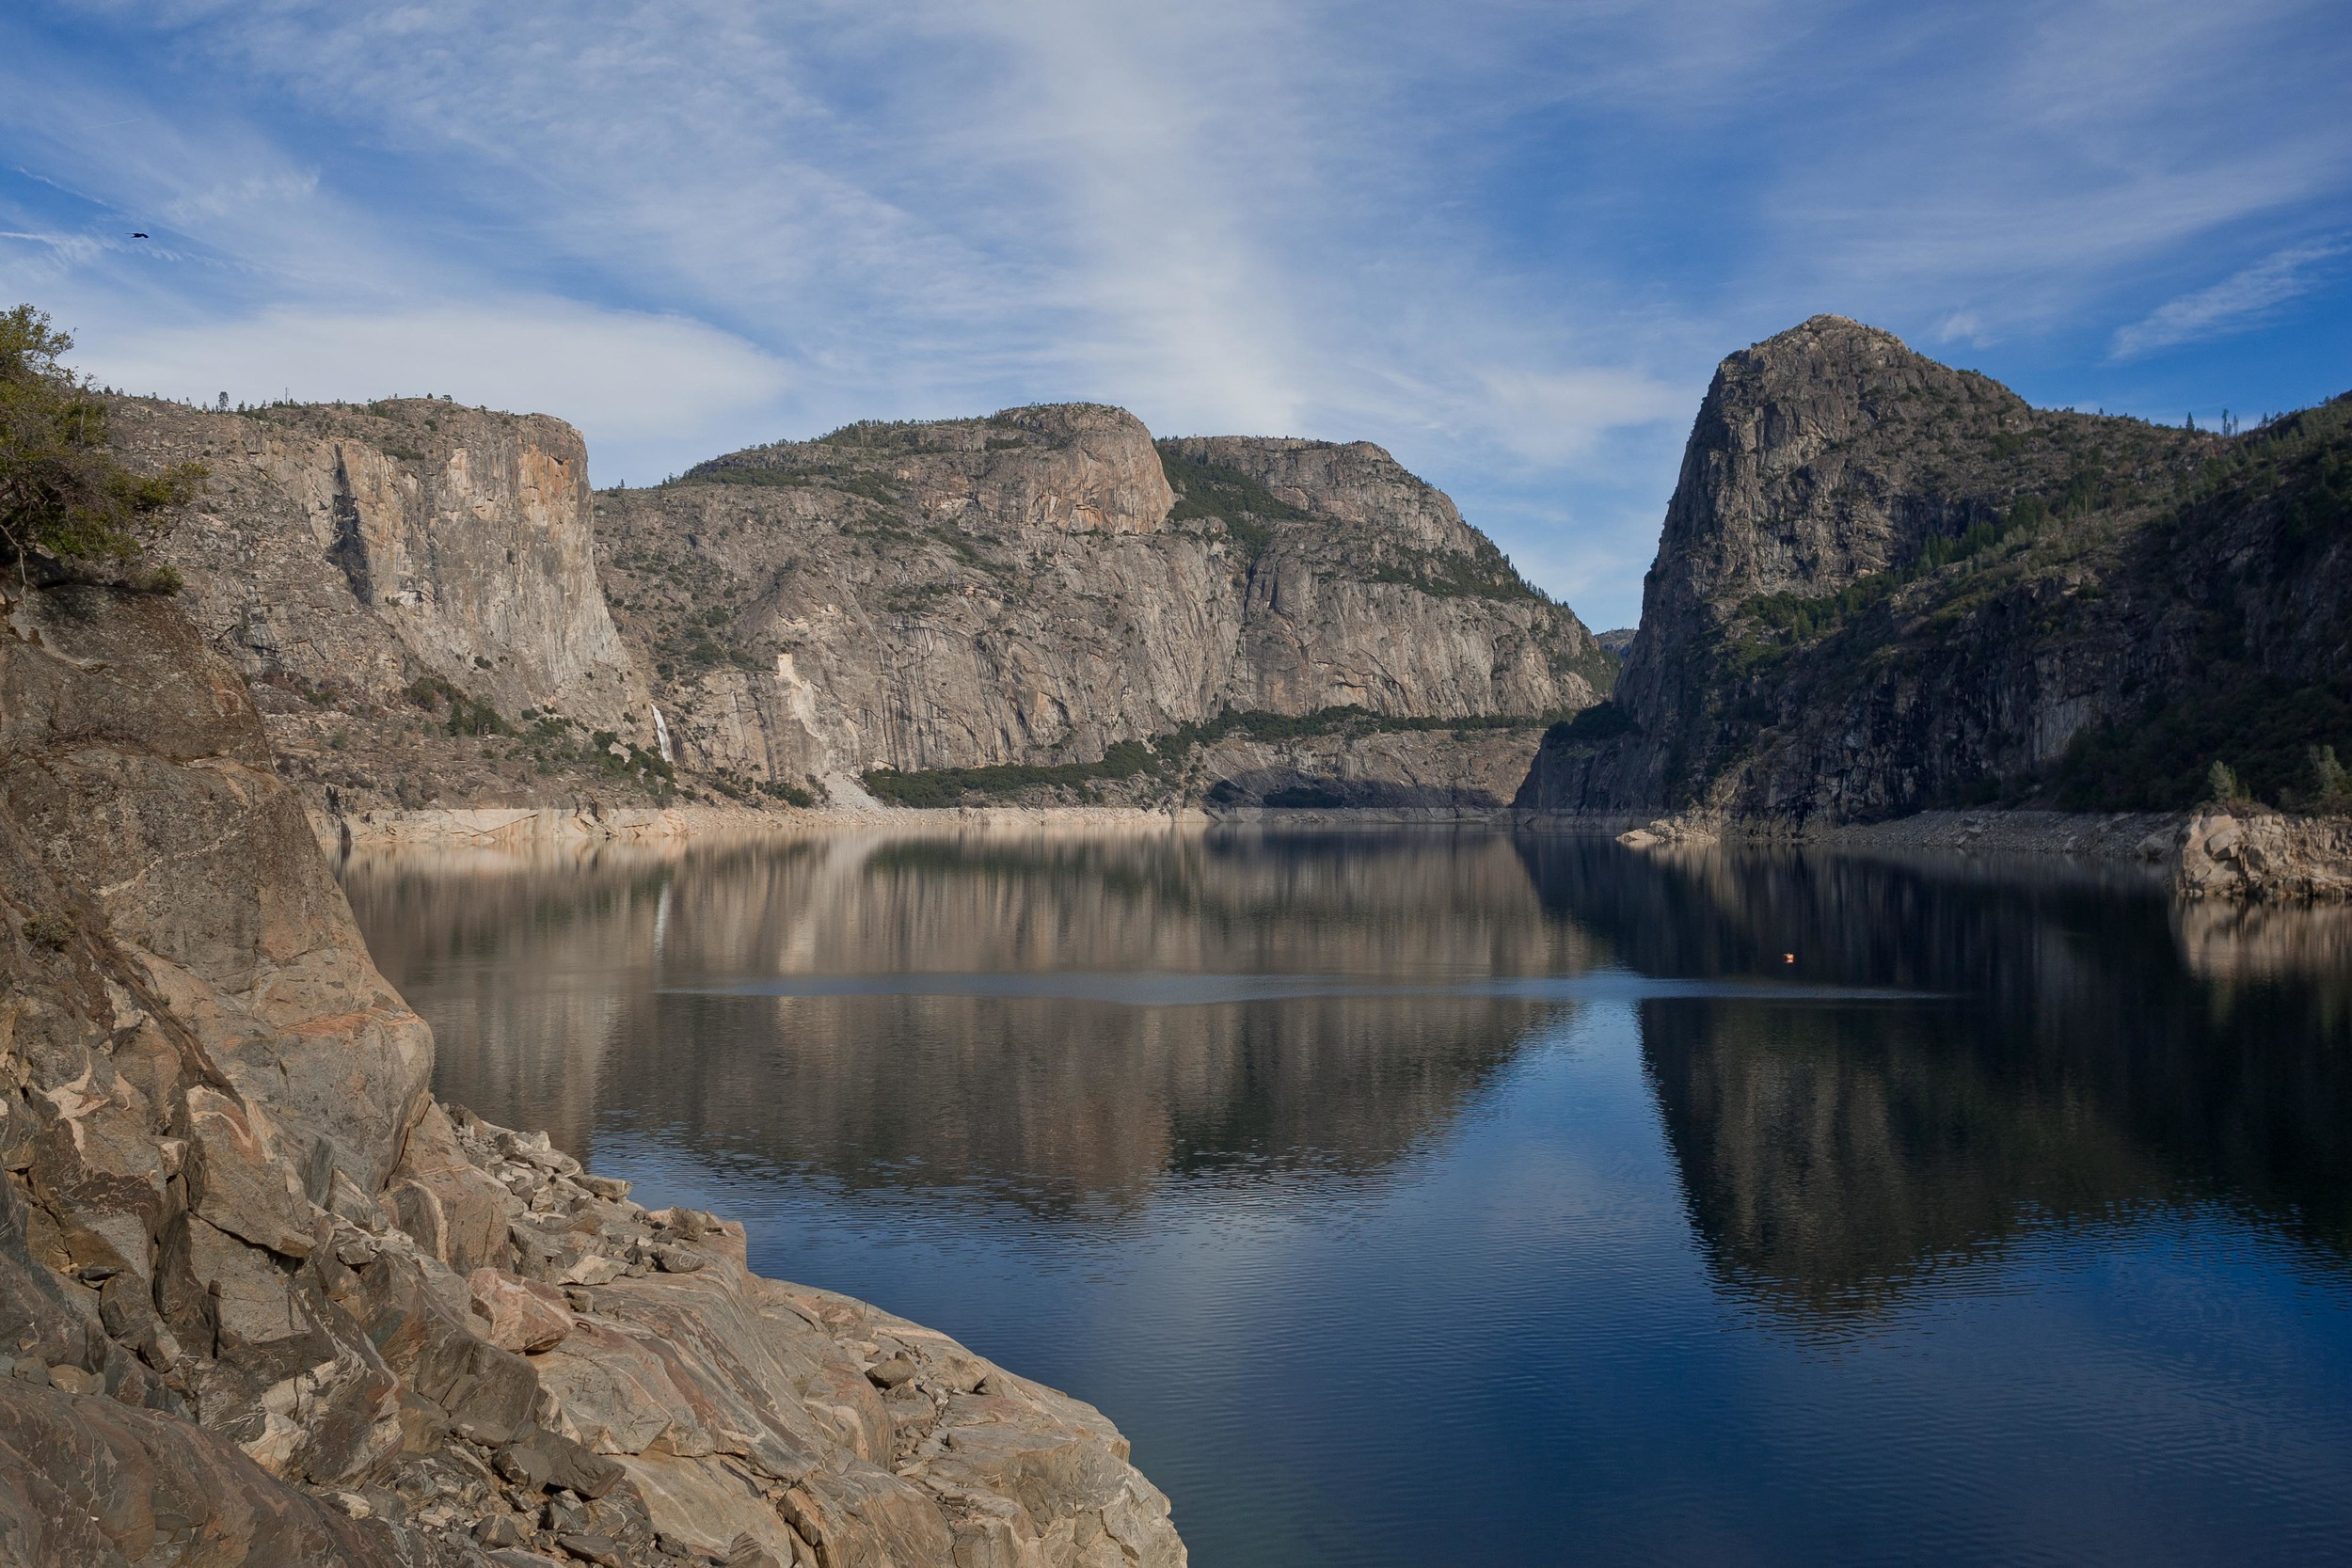 Hetch Hetchy Reservoir, Yosemite National Park. 2015